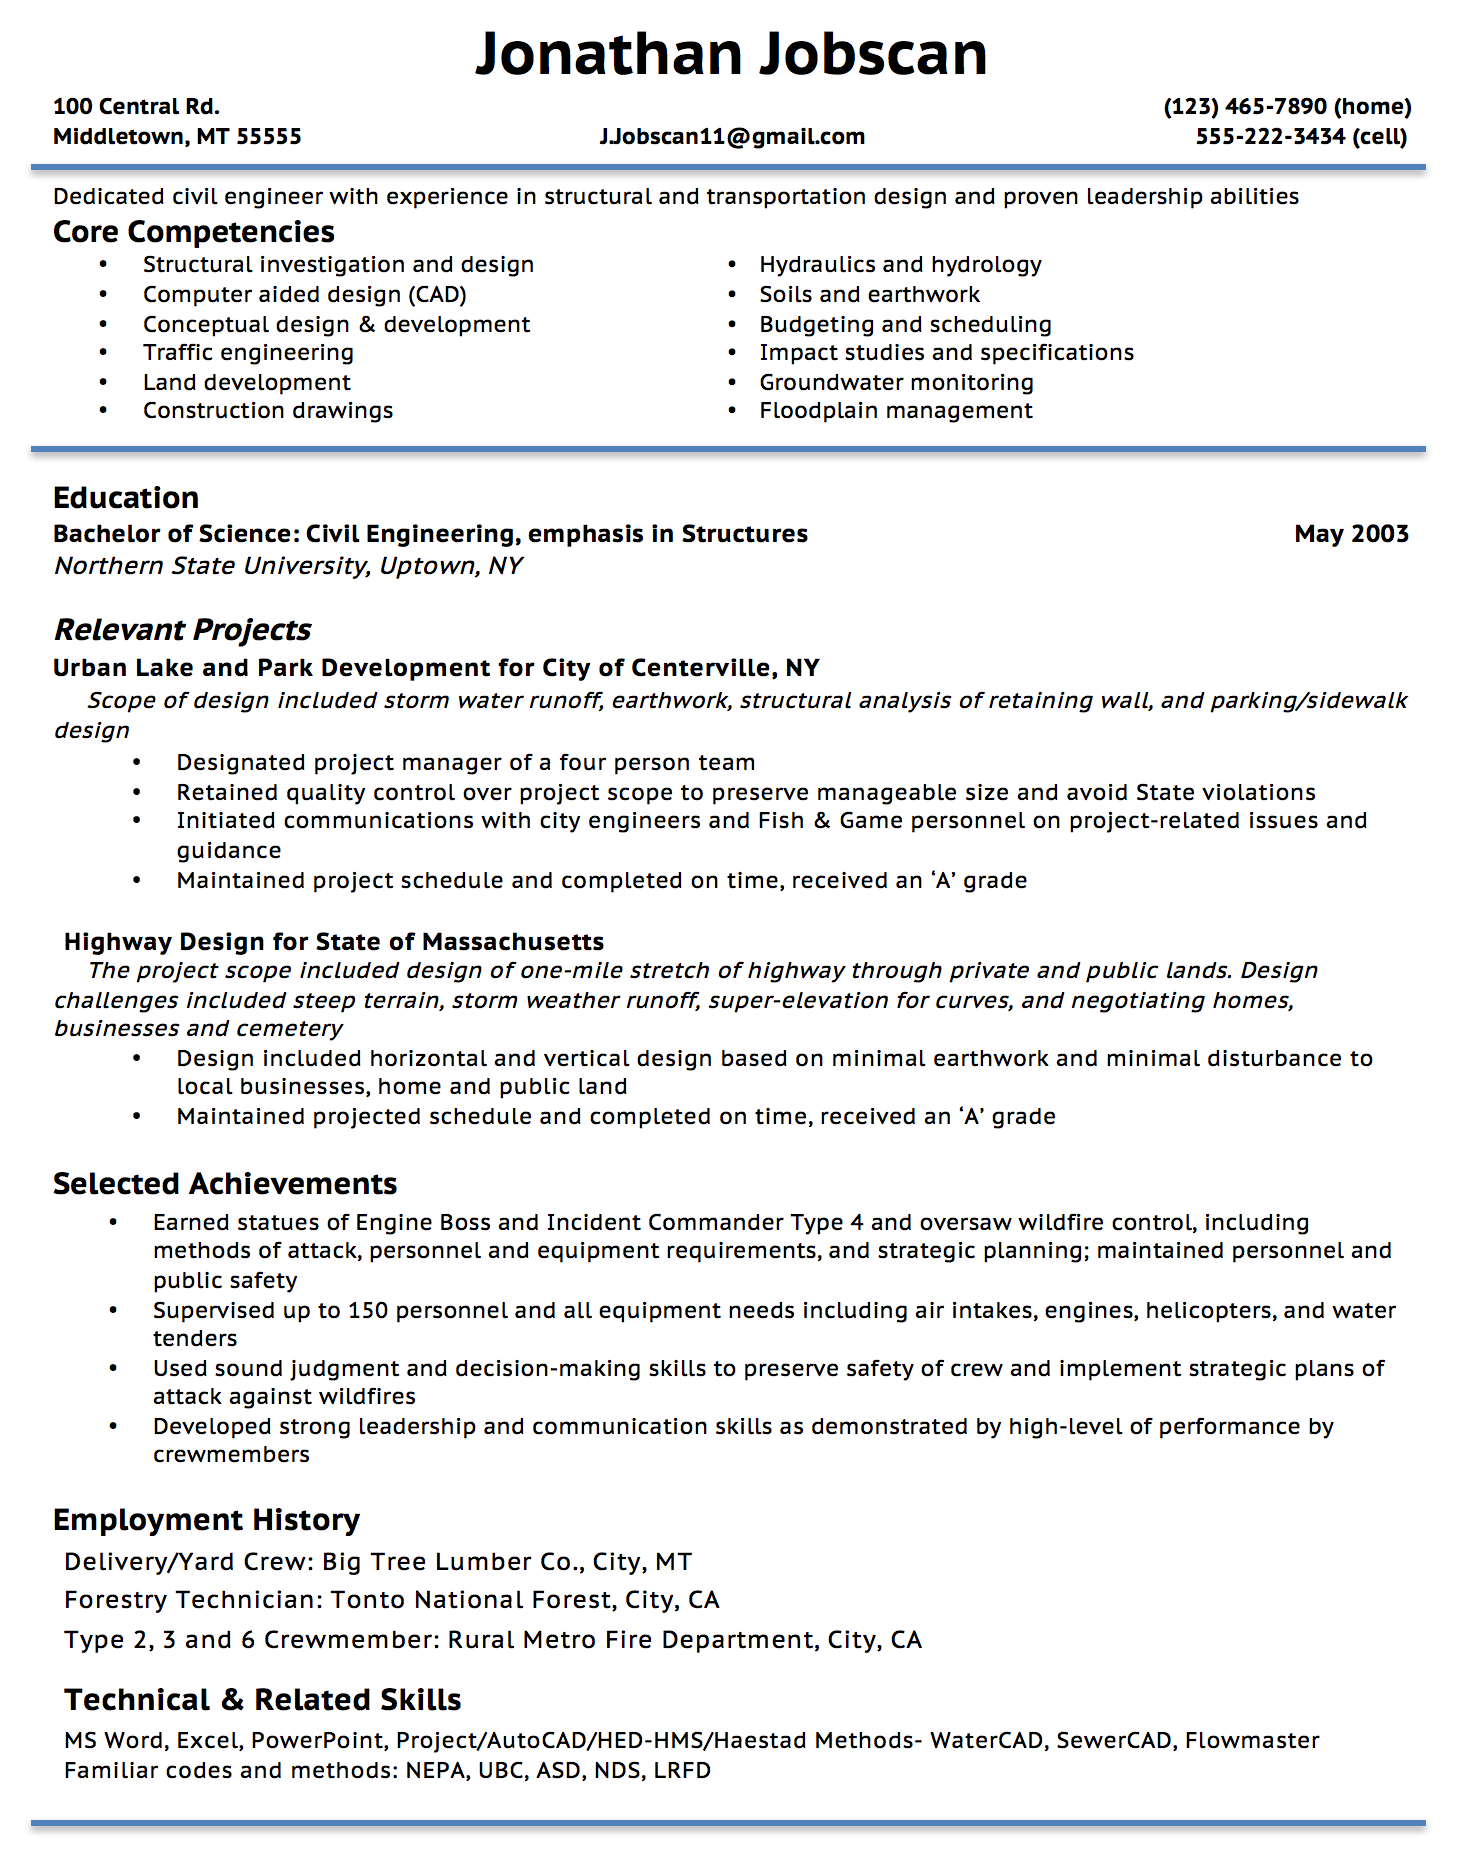 Opposenewapstandardsus  Remarkable Resume Writing Guide  Jobscan With Entrancing Example Of A Functional Resume Format With Appealing Accounting Resume Templates Also Resume Example For Retail In Addition Sample Resume High School Graduate And Verbs To Use On A Resume As Well As Software Engineer Resume Summary Additionally Do You Need Objective On Resume From Jobscanco With Opposenewapstandardsus  Entrancing Resume Writing Guide  Jobscan With Appealing Example Of A Functional Resume Format And Remarkable Accounting Resume Templates Also Resume Example For Retail In Addition Sample Resume High School Graduate From Jobscanco